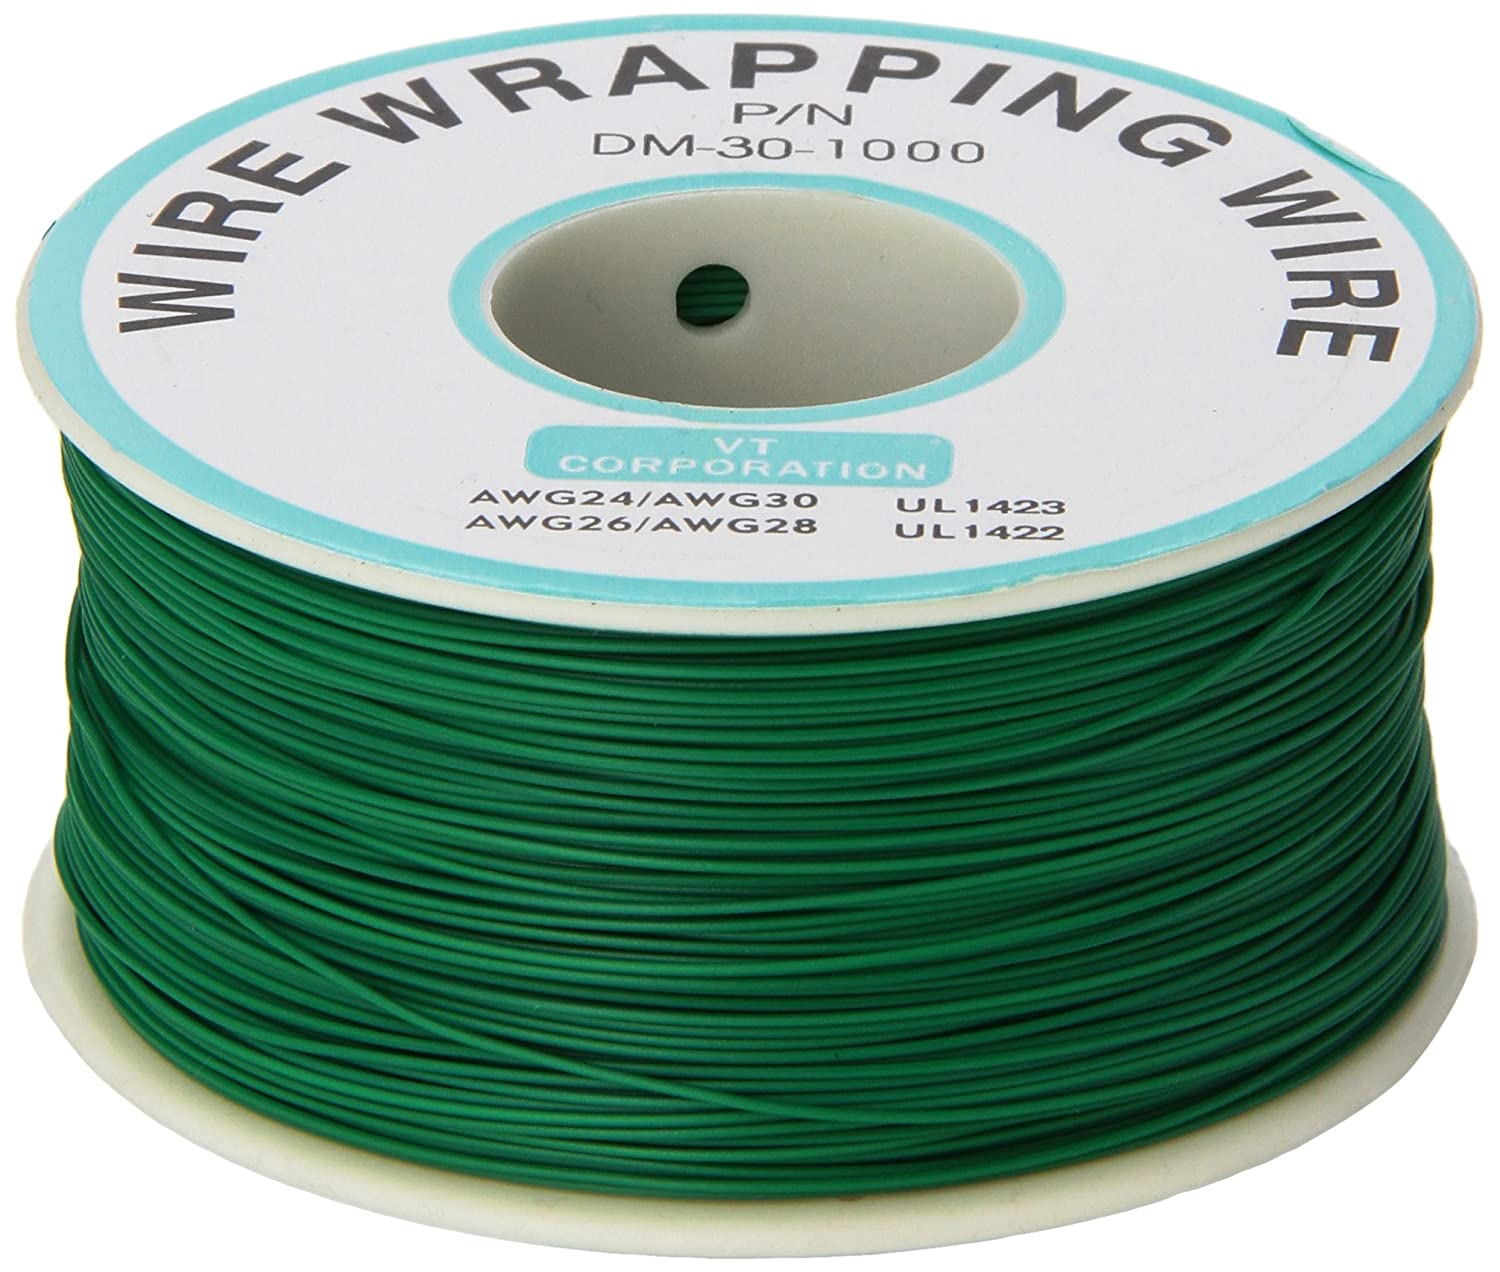 Pcb Solder Green Flexible 025mm Dia Copper Wire 30awg Wrapping Wrap Pics Photos Electronic Circuit Board Showing Wires And Microchips 1000ft Solid